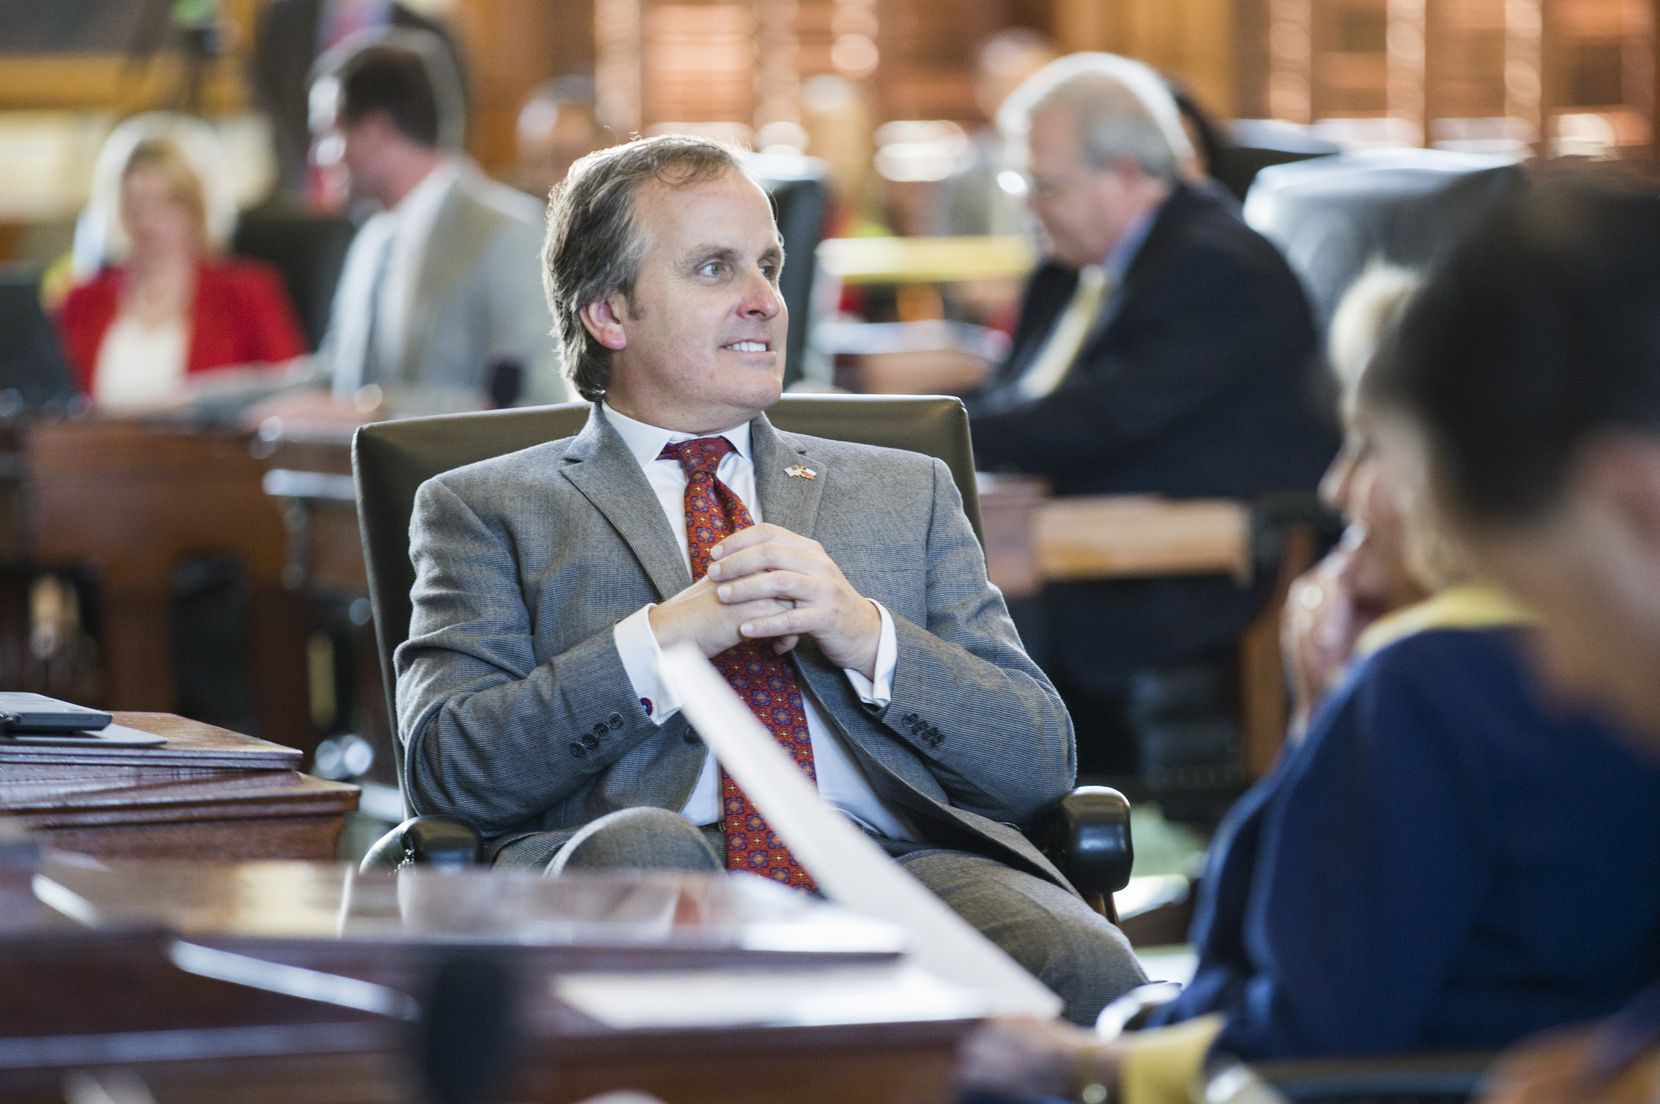 Senator Bryan Hughes, R-Mineola, sits at his desk on the second day of the 86th Texas Legislature on Wednesday, January 9, 2019 at the Texas State Capitol, in Austin, Texas.  Hughes is the author of a sweeping electoral bill tabled in the 2021 session (Ashley Landis / The Dallas Morning News)